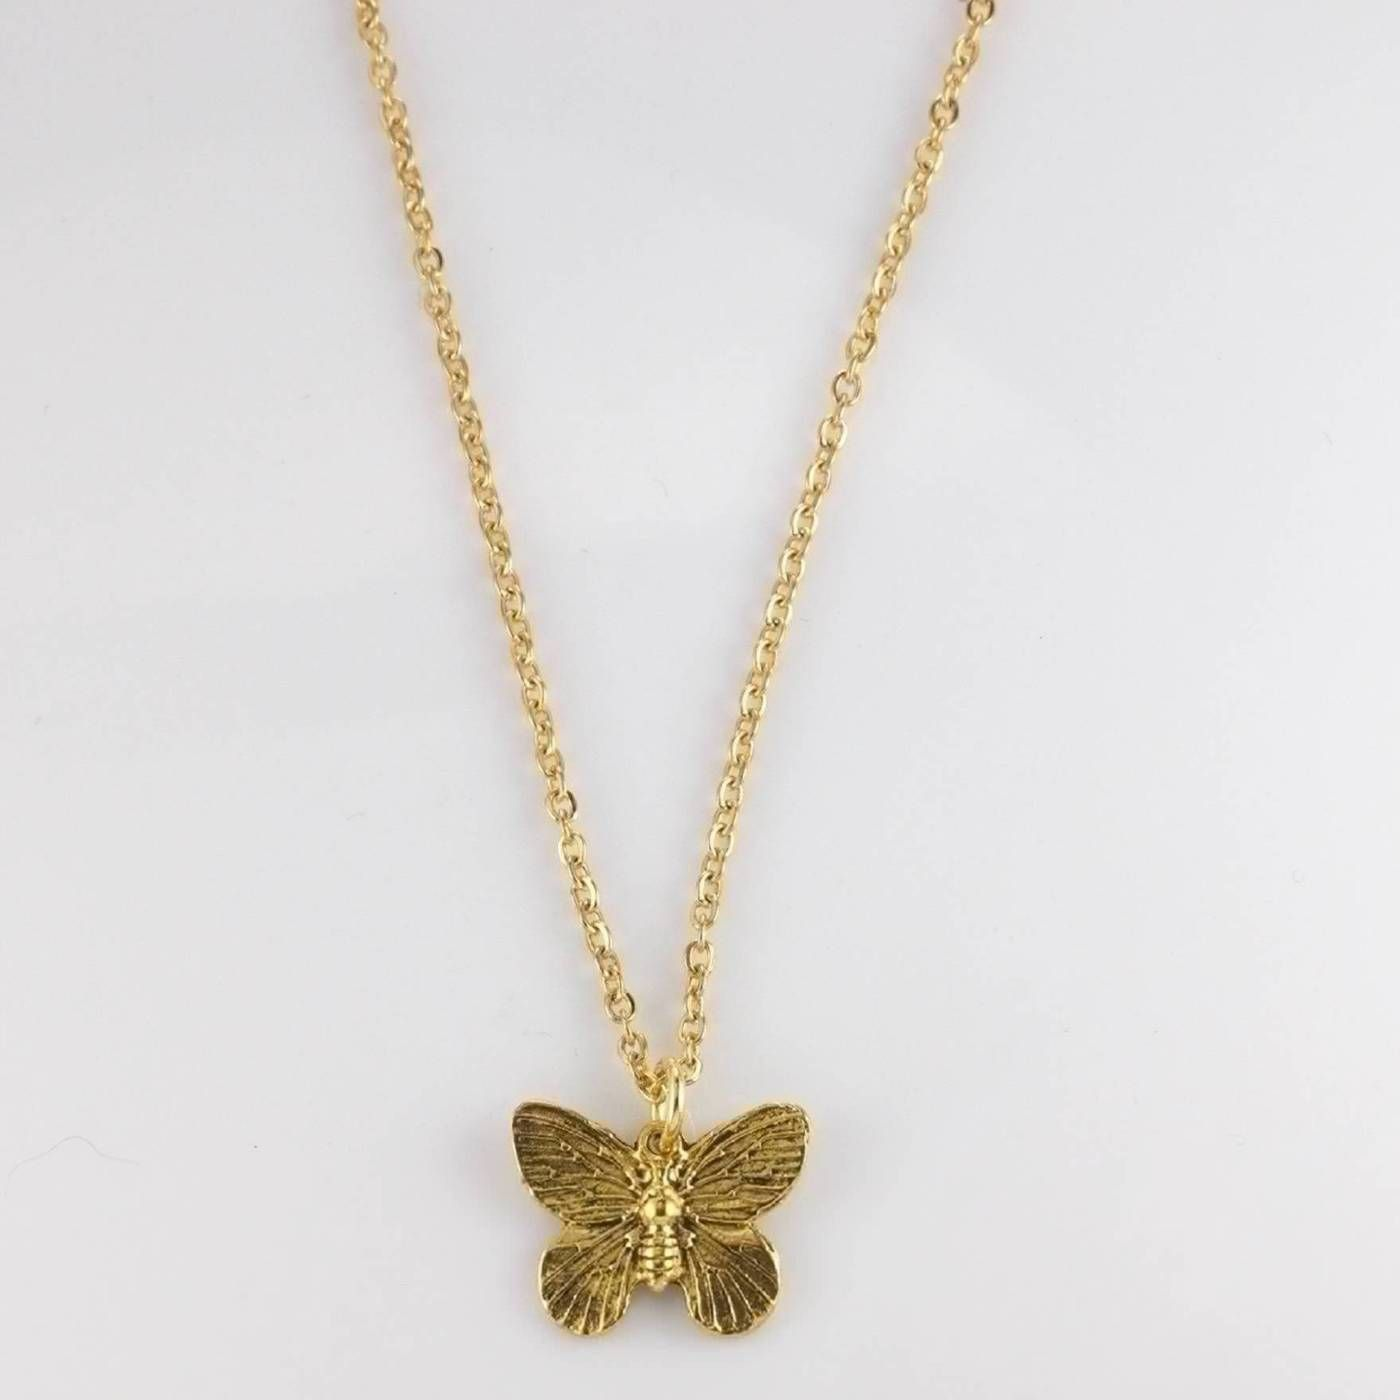 "8a582825010d0c 18k Gold Gold Playboi Carti AWGE Butterfly Pendant Necklace 20"" Link Chain  Size ONE SIZE"